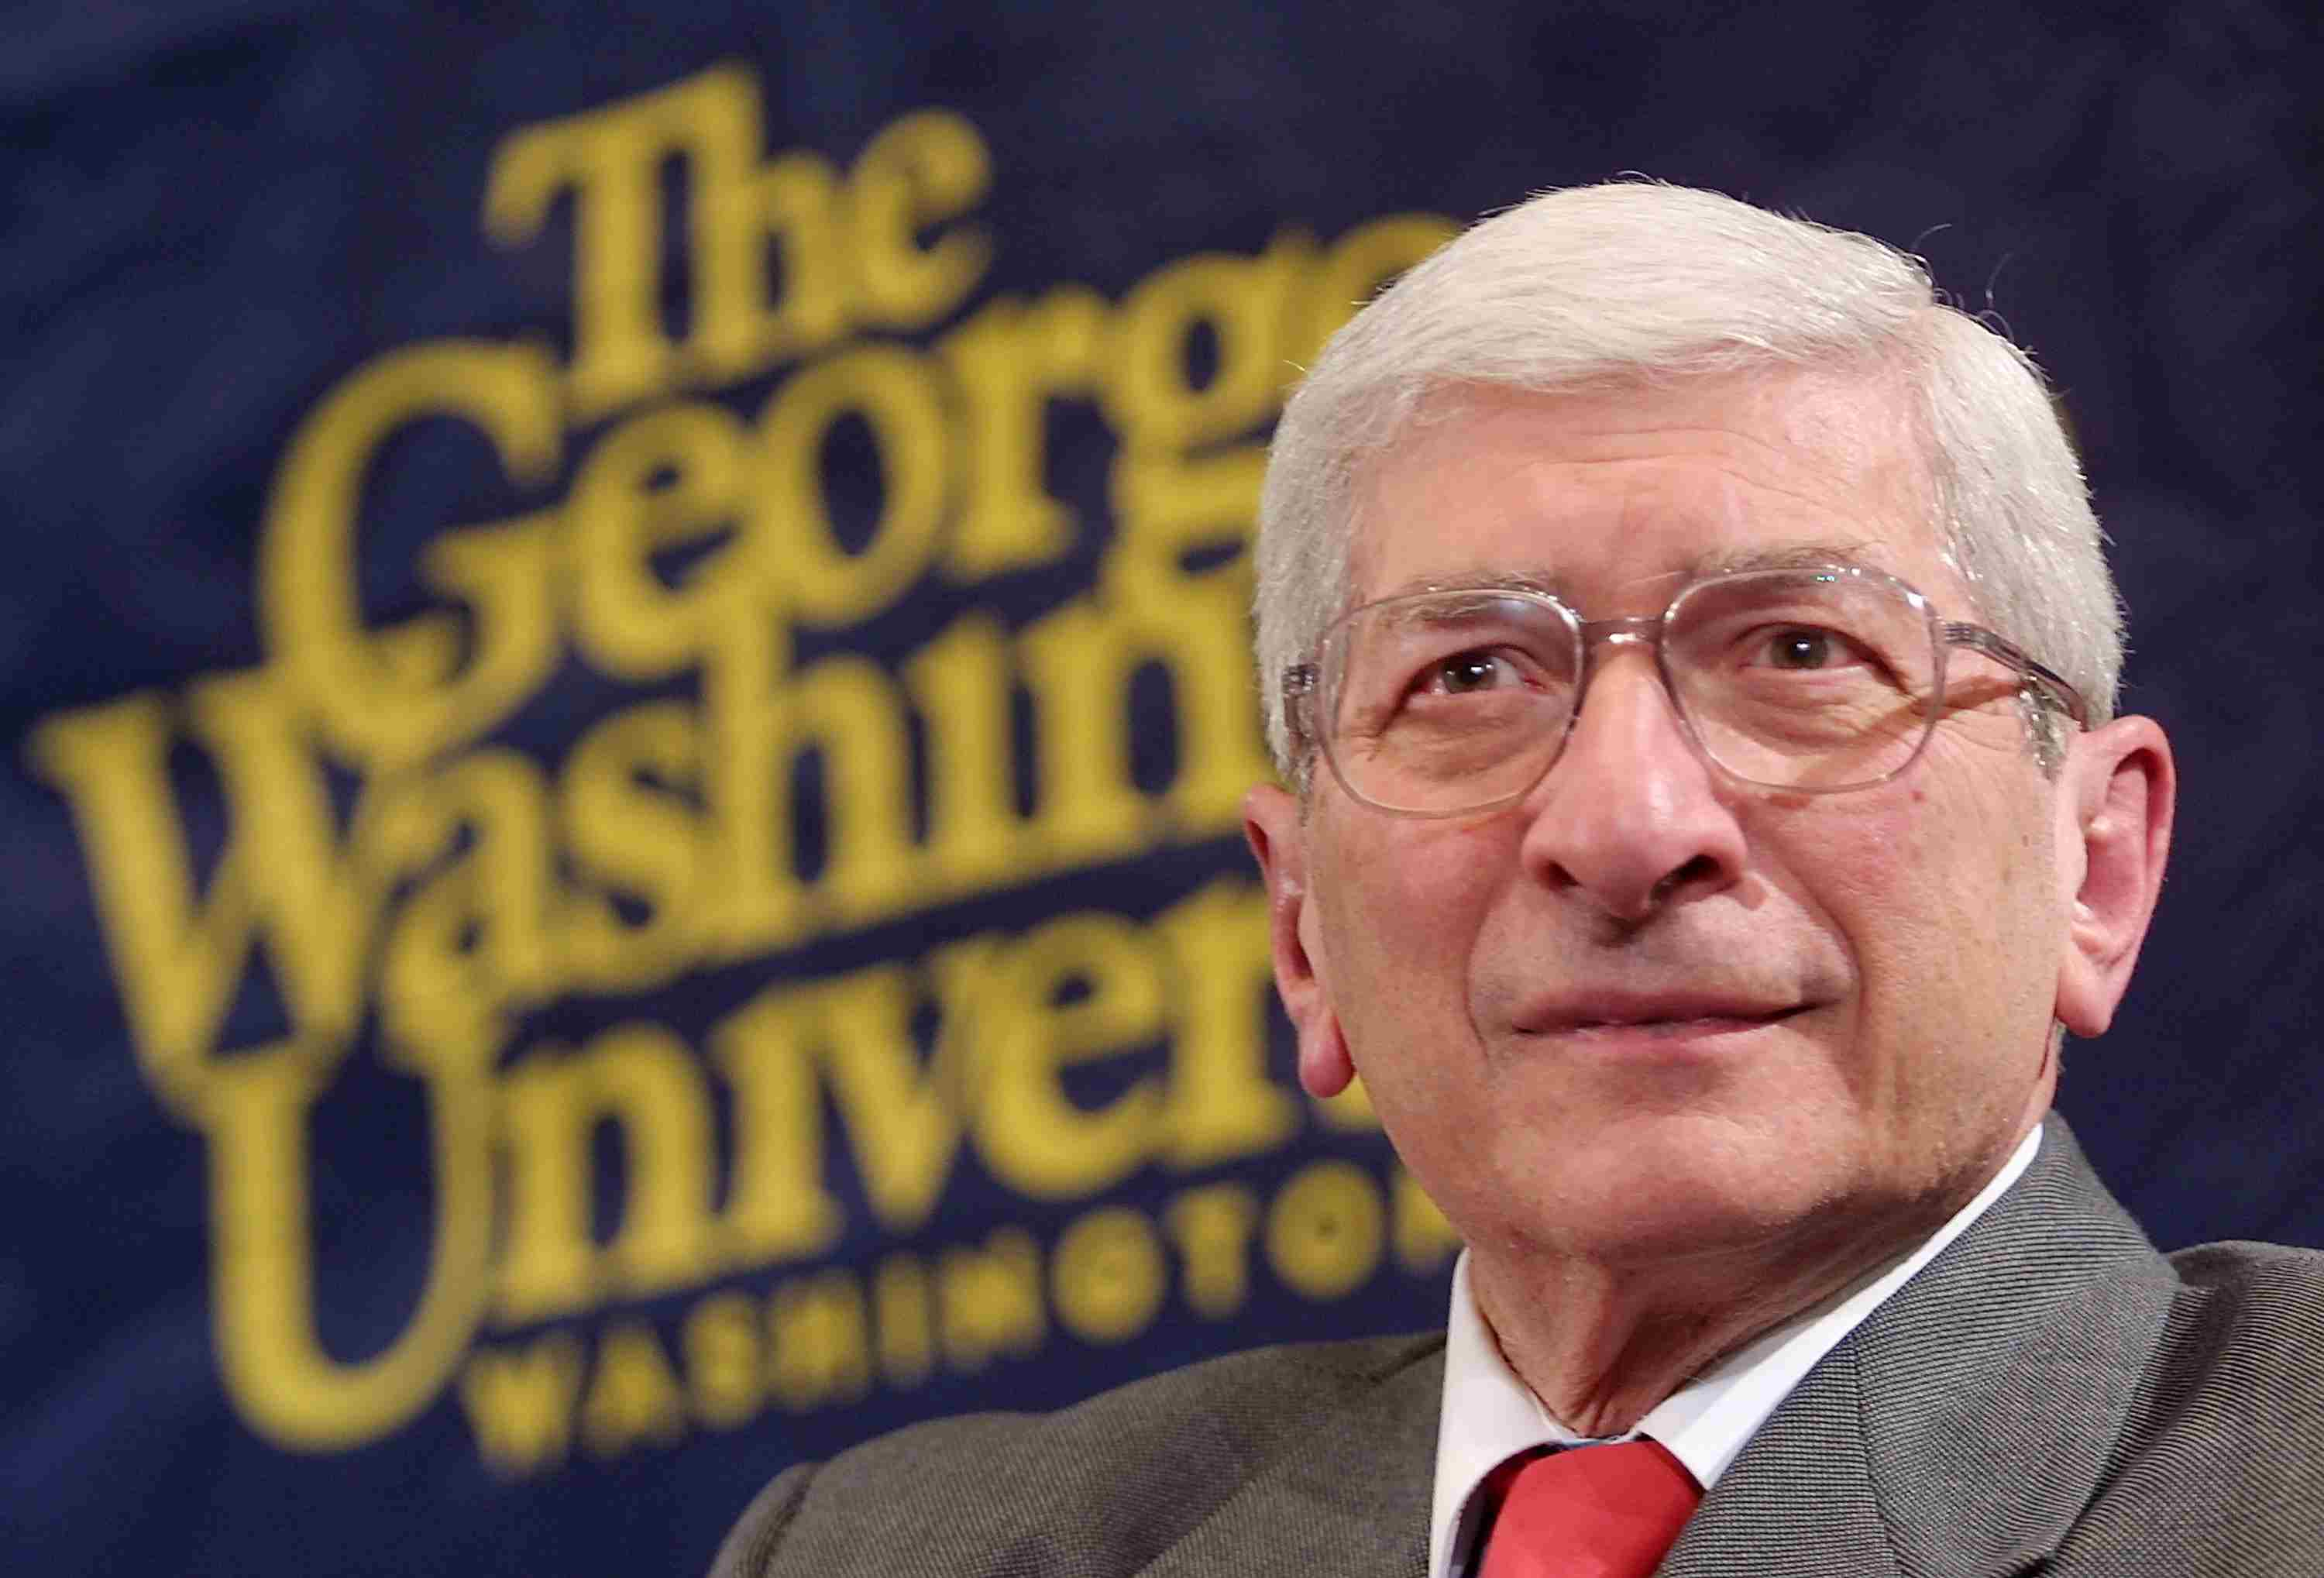 Marvin Kalb Listens To A Question From The Audience During His Conversation With Aol Time...